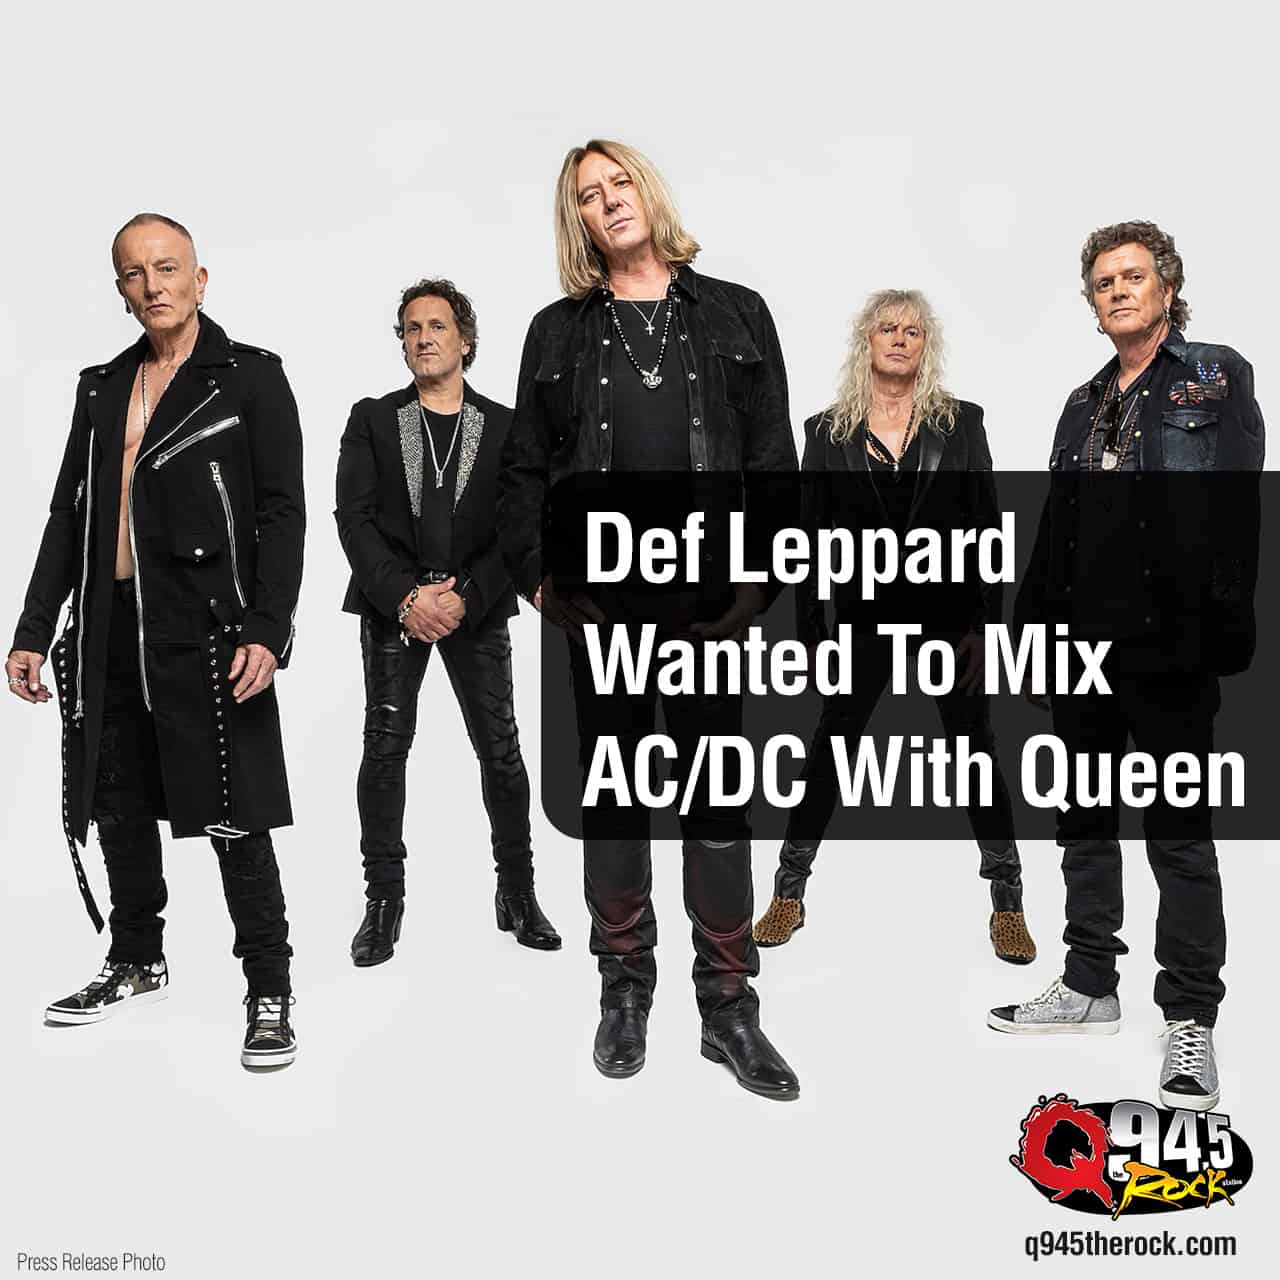 Def Leppard Wanted To Mix AC/DC With Queen